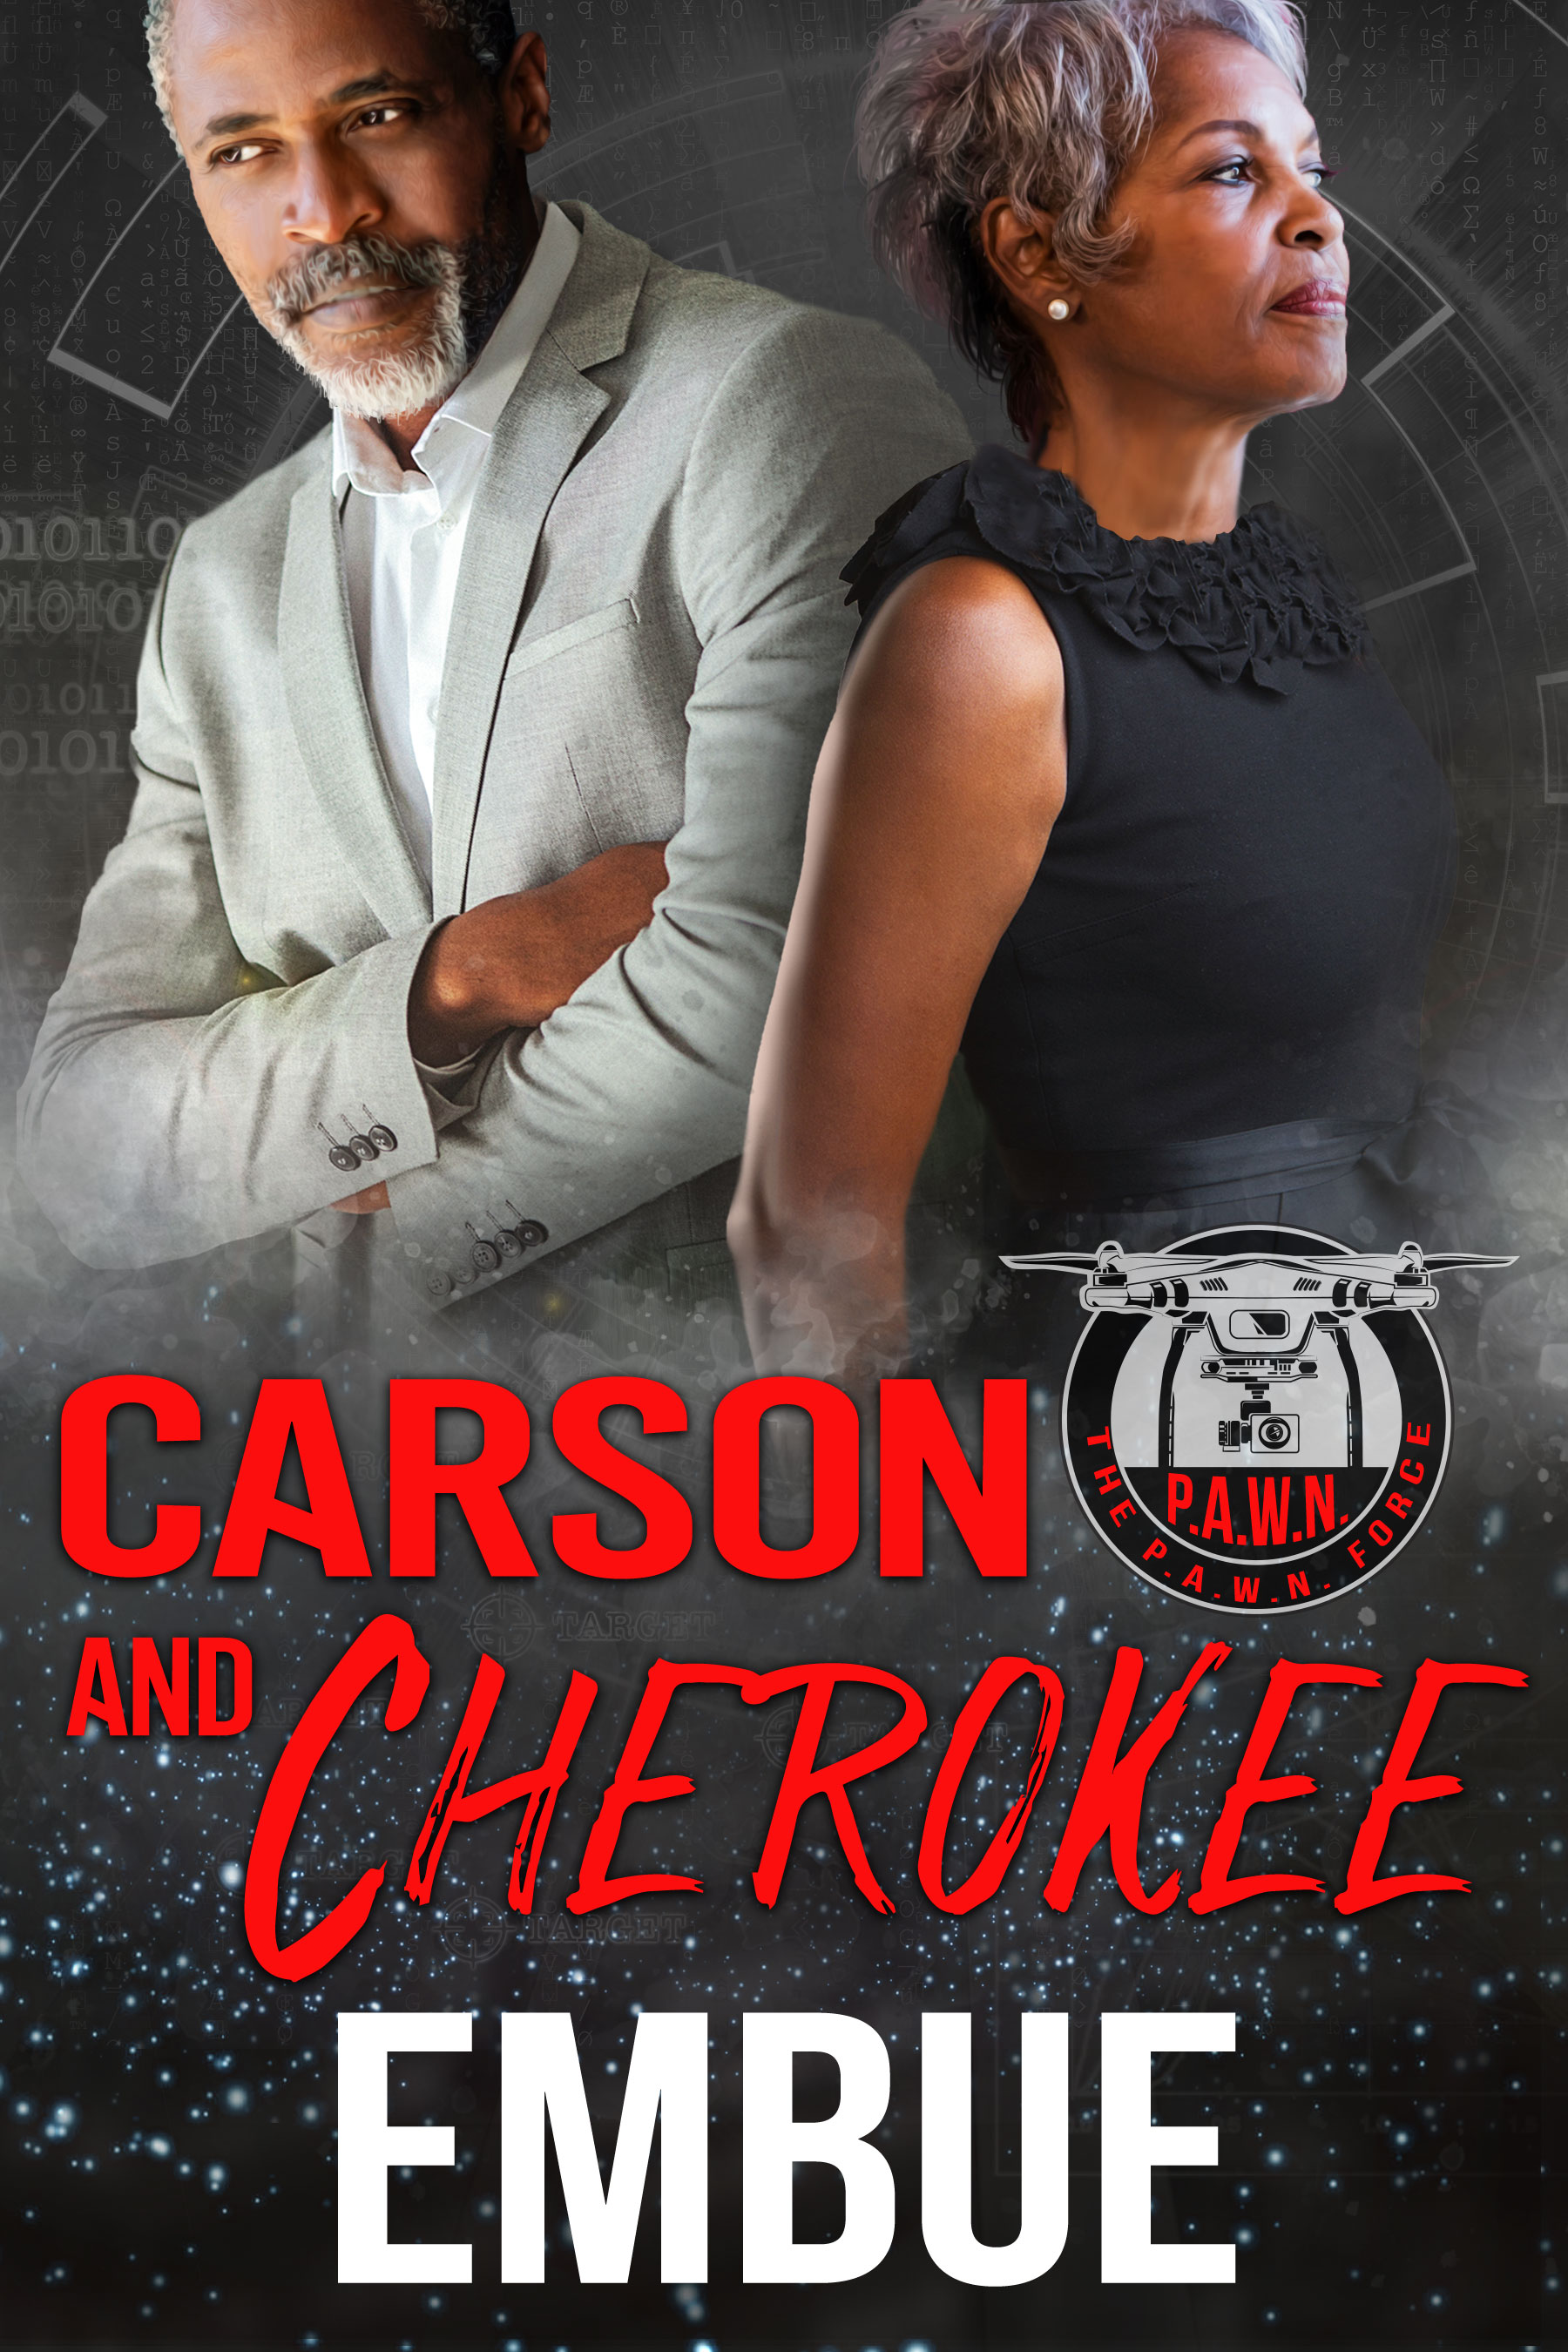 Carson and Cherokee